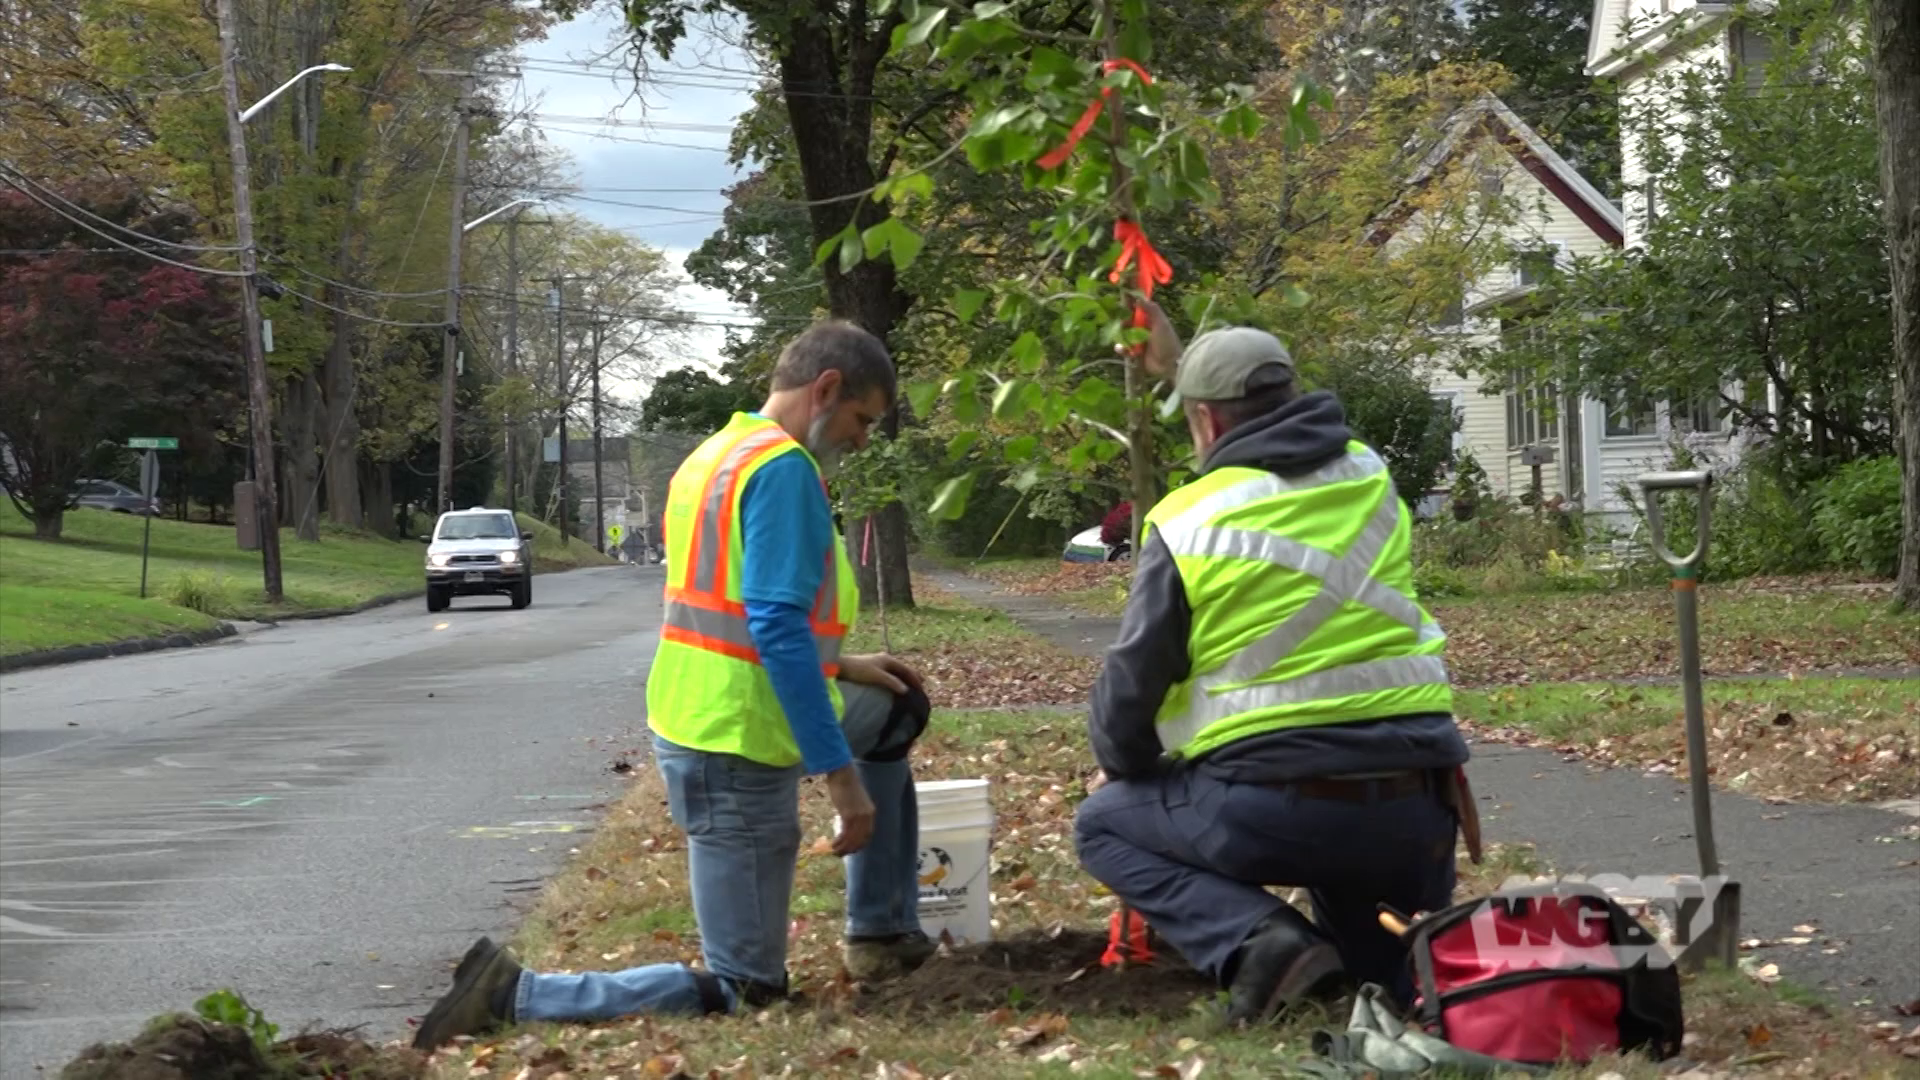 Visit two western Mass towns—Northampton and Lanesborough—to see how urban forestry plays a role in town planning.